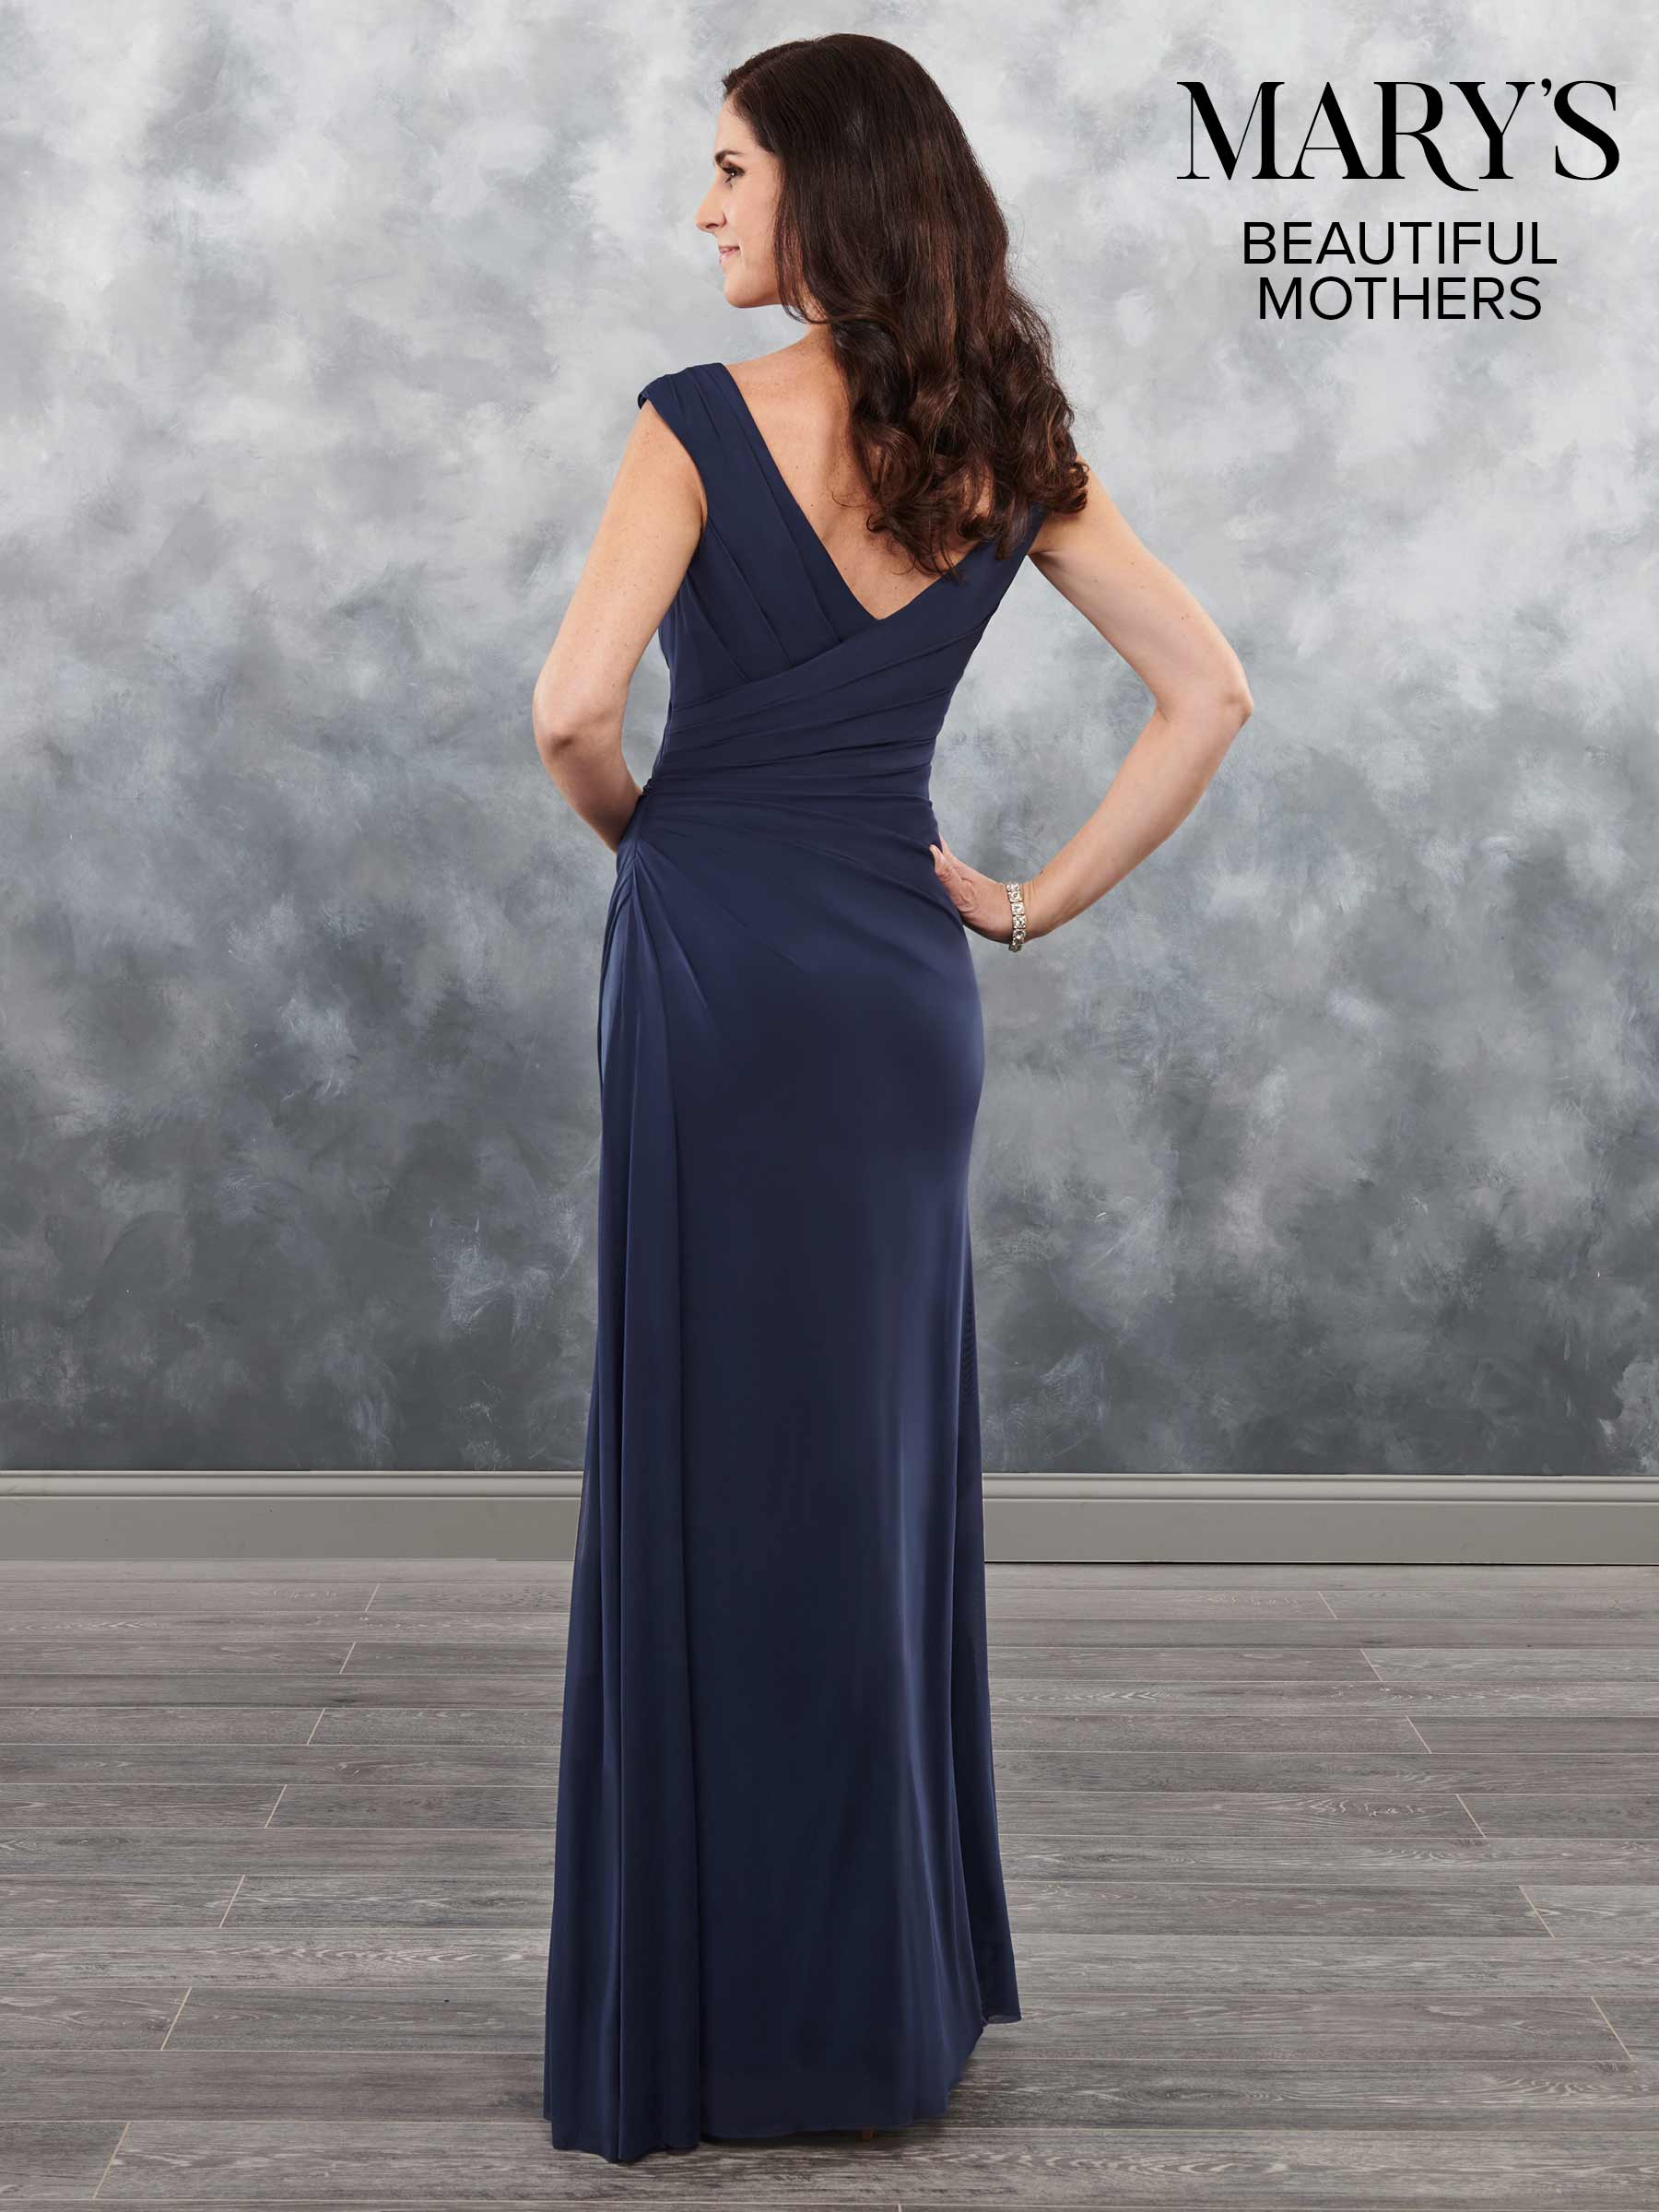 Mother Of The Bride Dresses | Beautiful Mothers | Style - MB8028